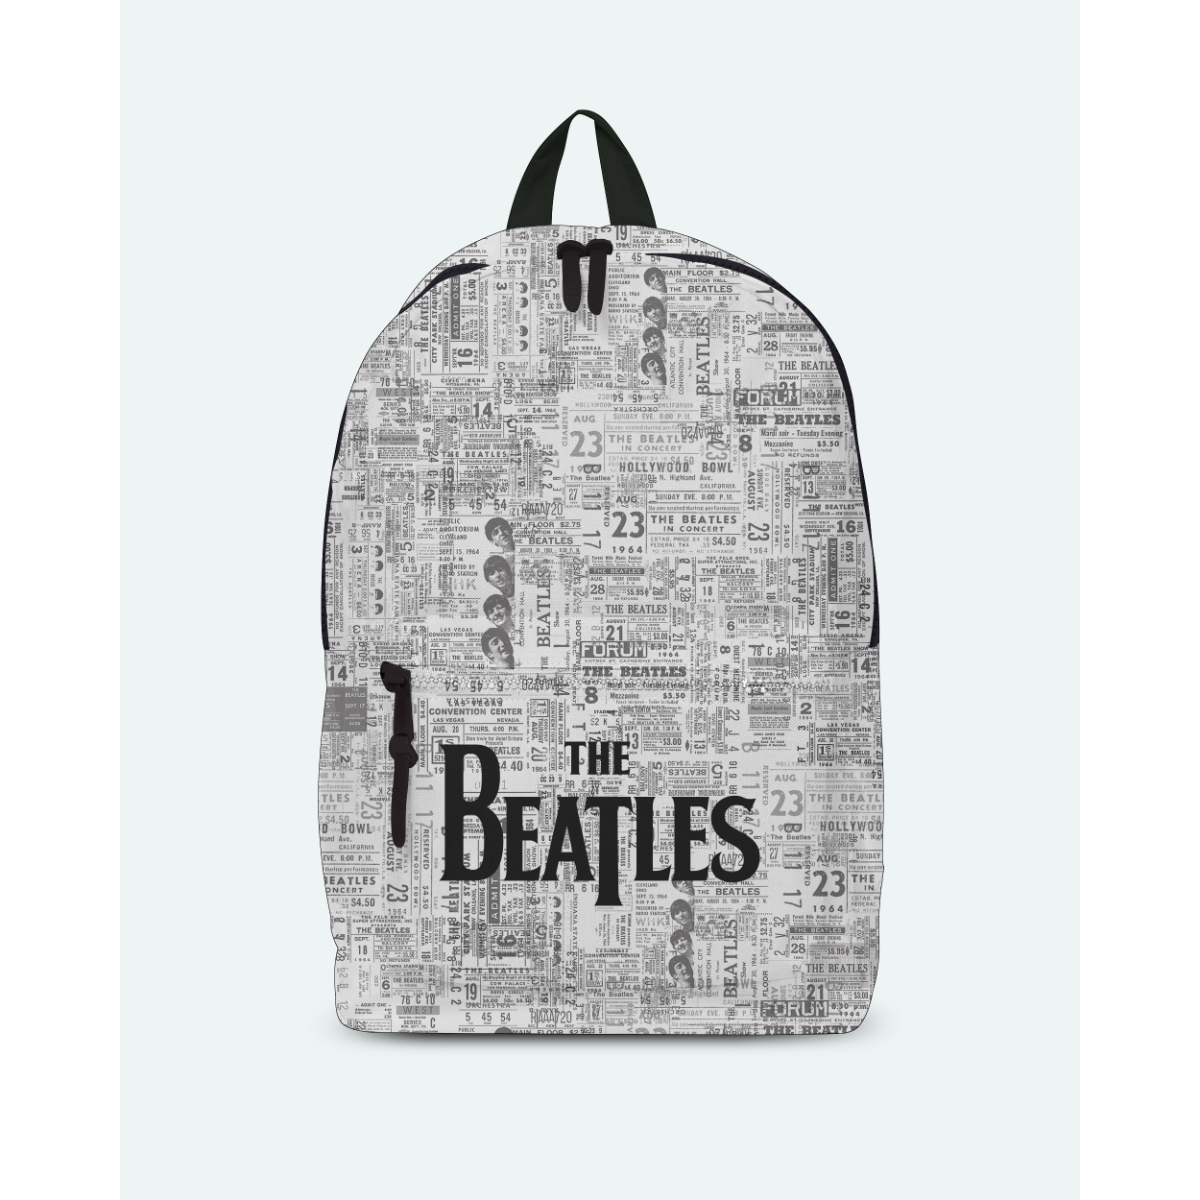 The Beatles Tickets Classic Backpack